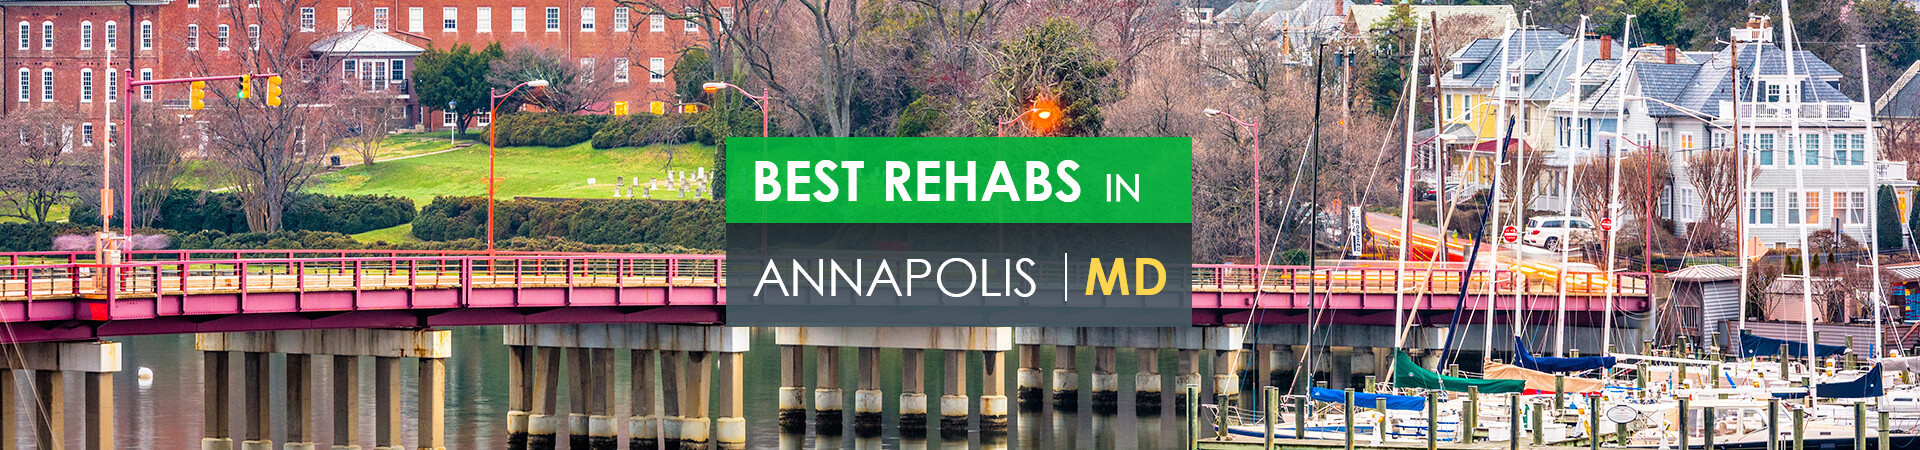 Best rehabs in Annapolis, MD